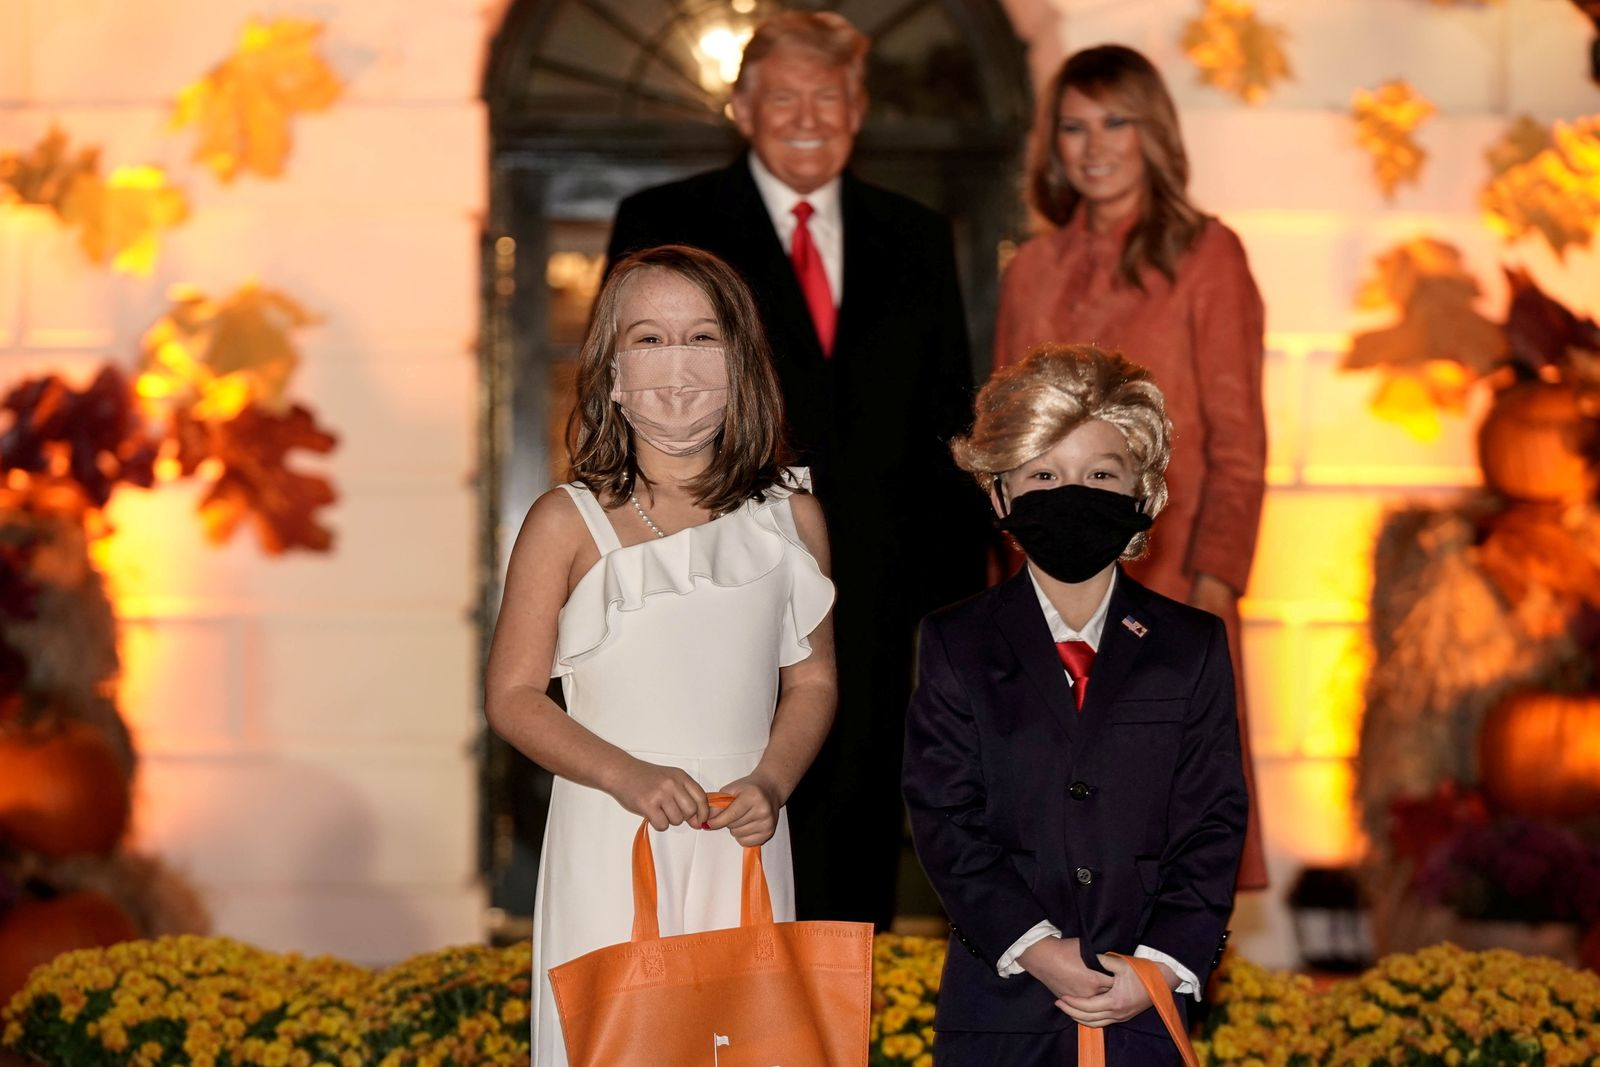 U.S. President Donald Trump and U.S. first lady Melania Trump host a Halloween event at the White House